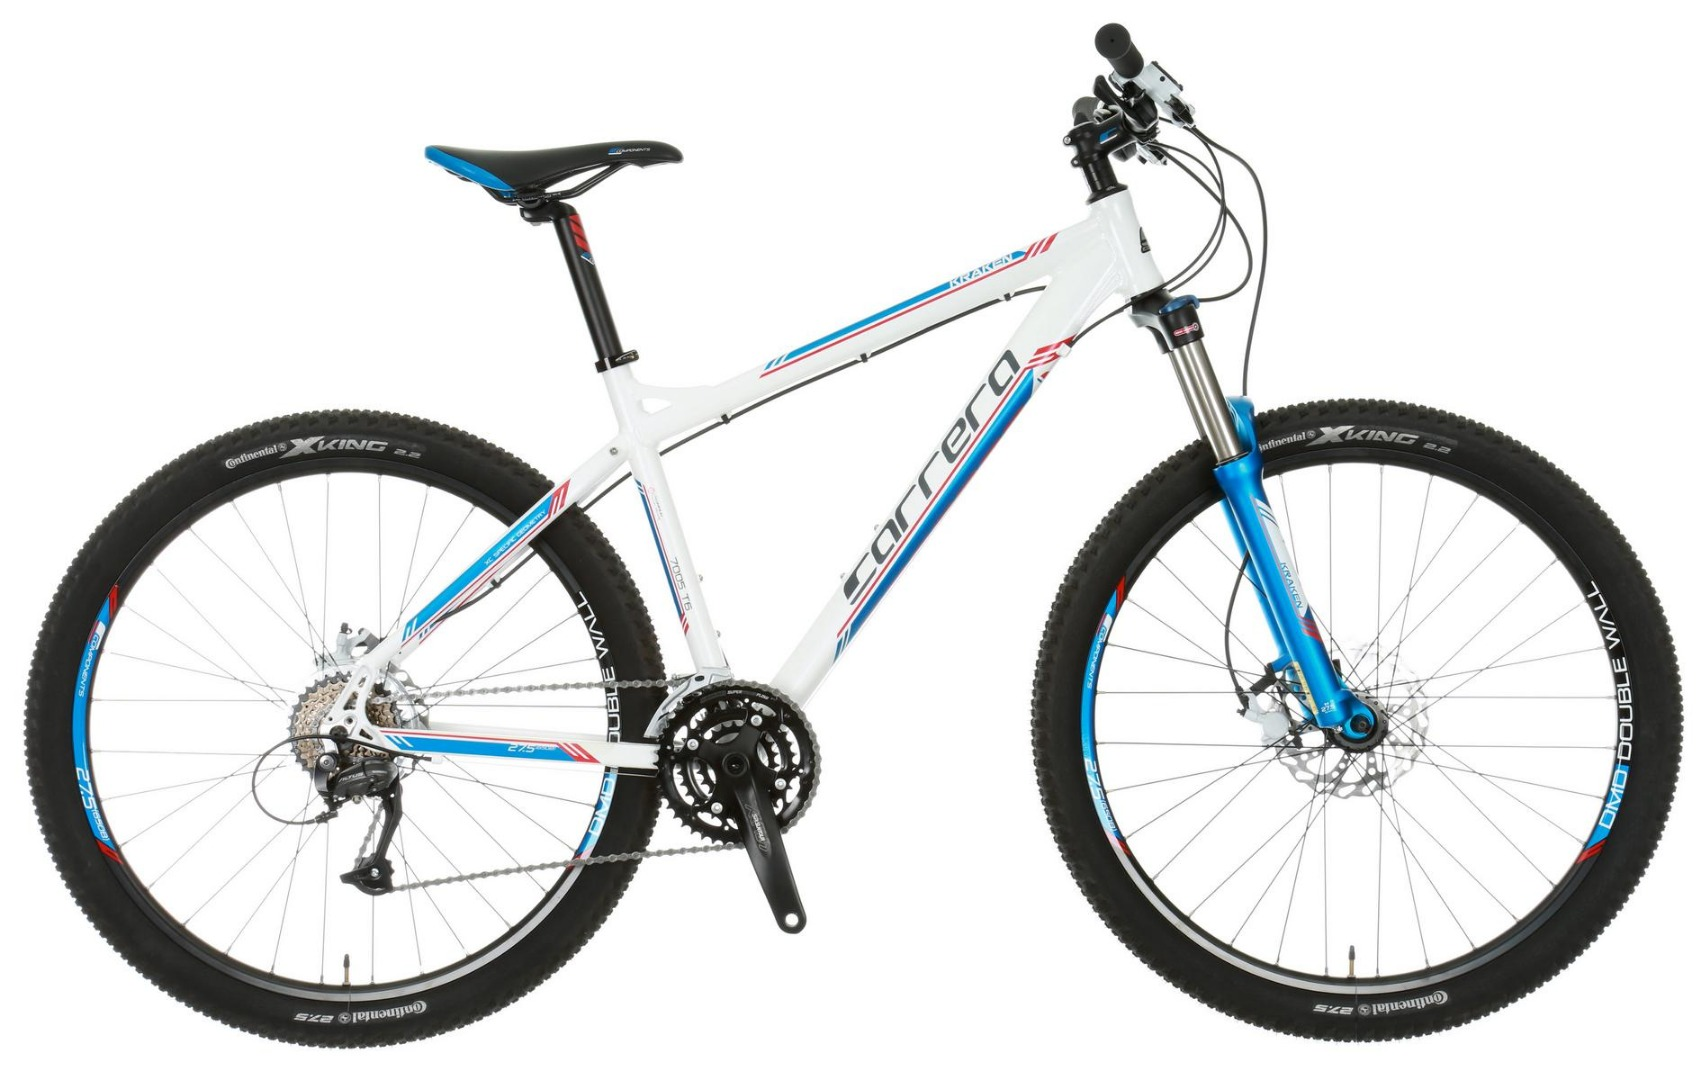 stolen bicycles Bike stolen bike theft is an unfortunate reality which happens far too often it's  especially disastrous when it happens to folks who use a bicycle as their primary .